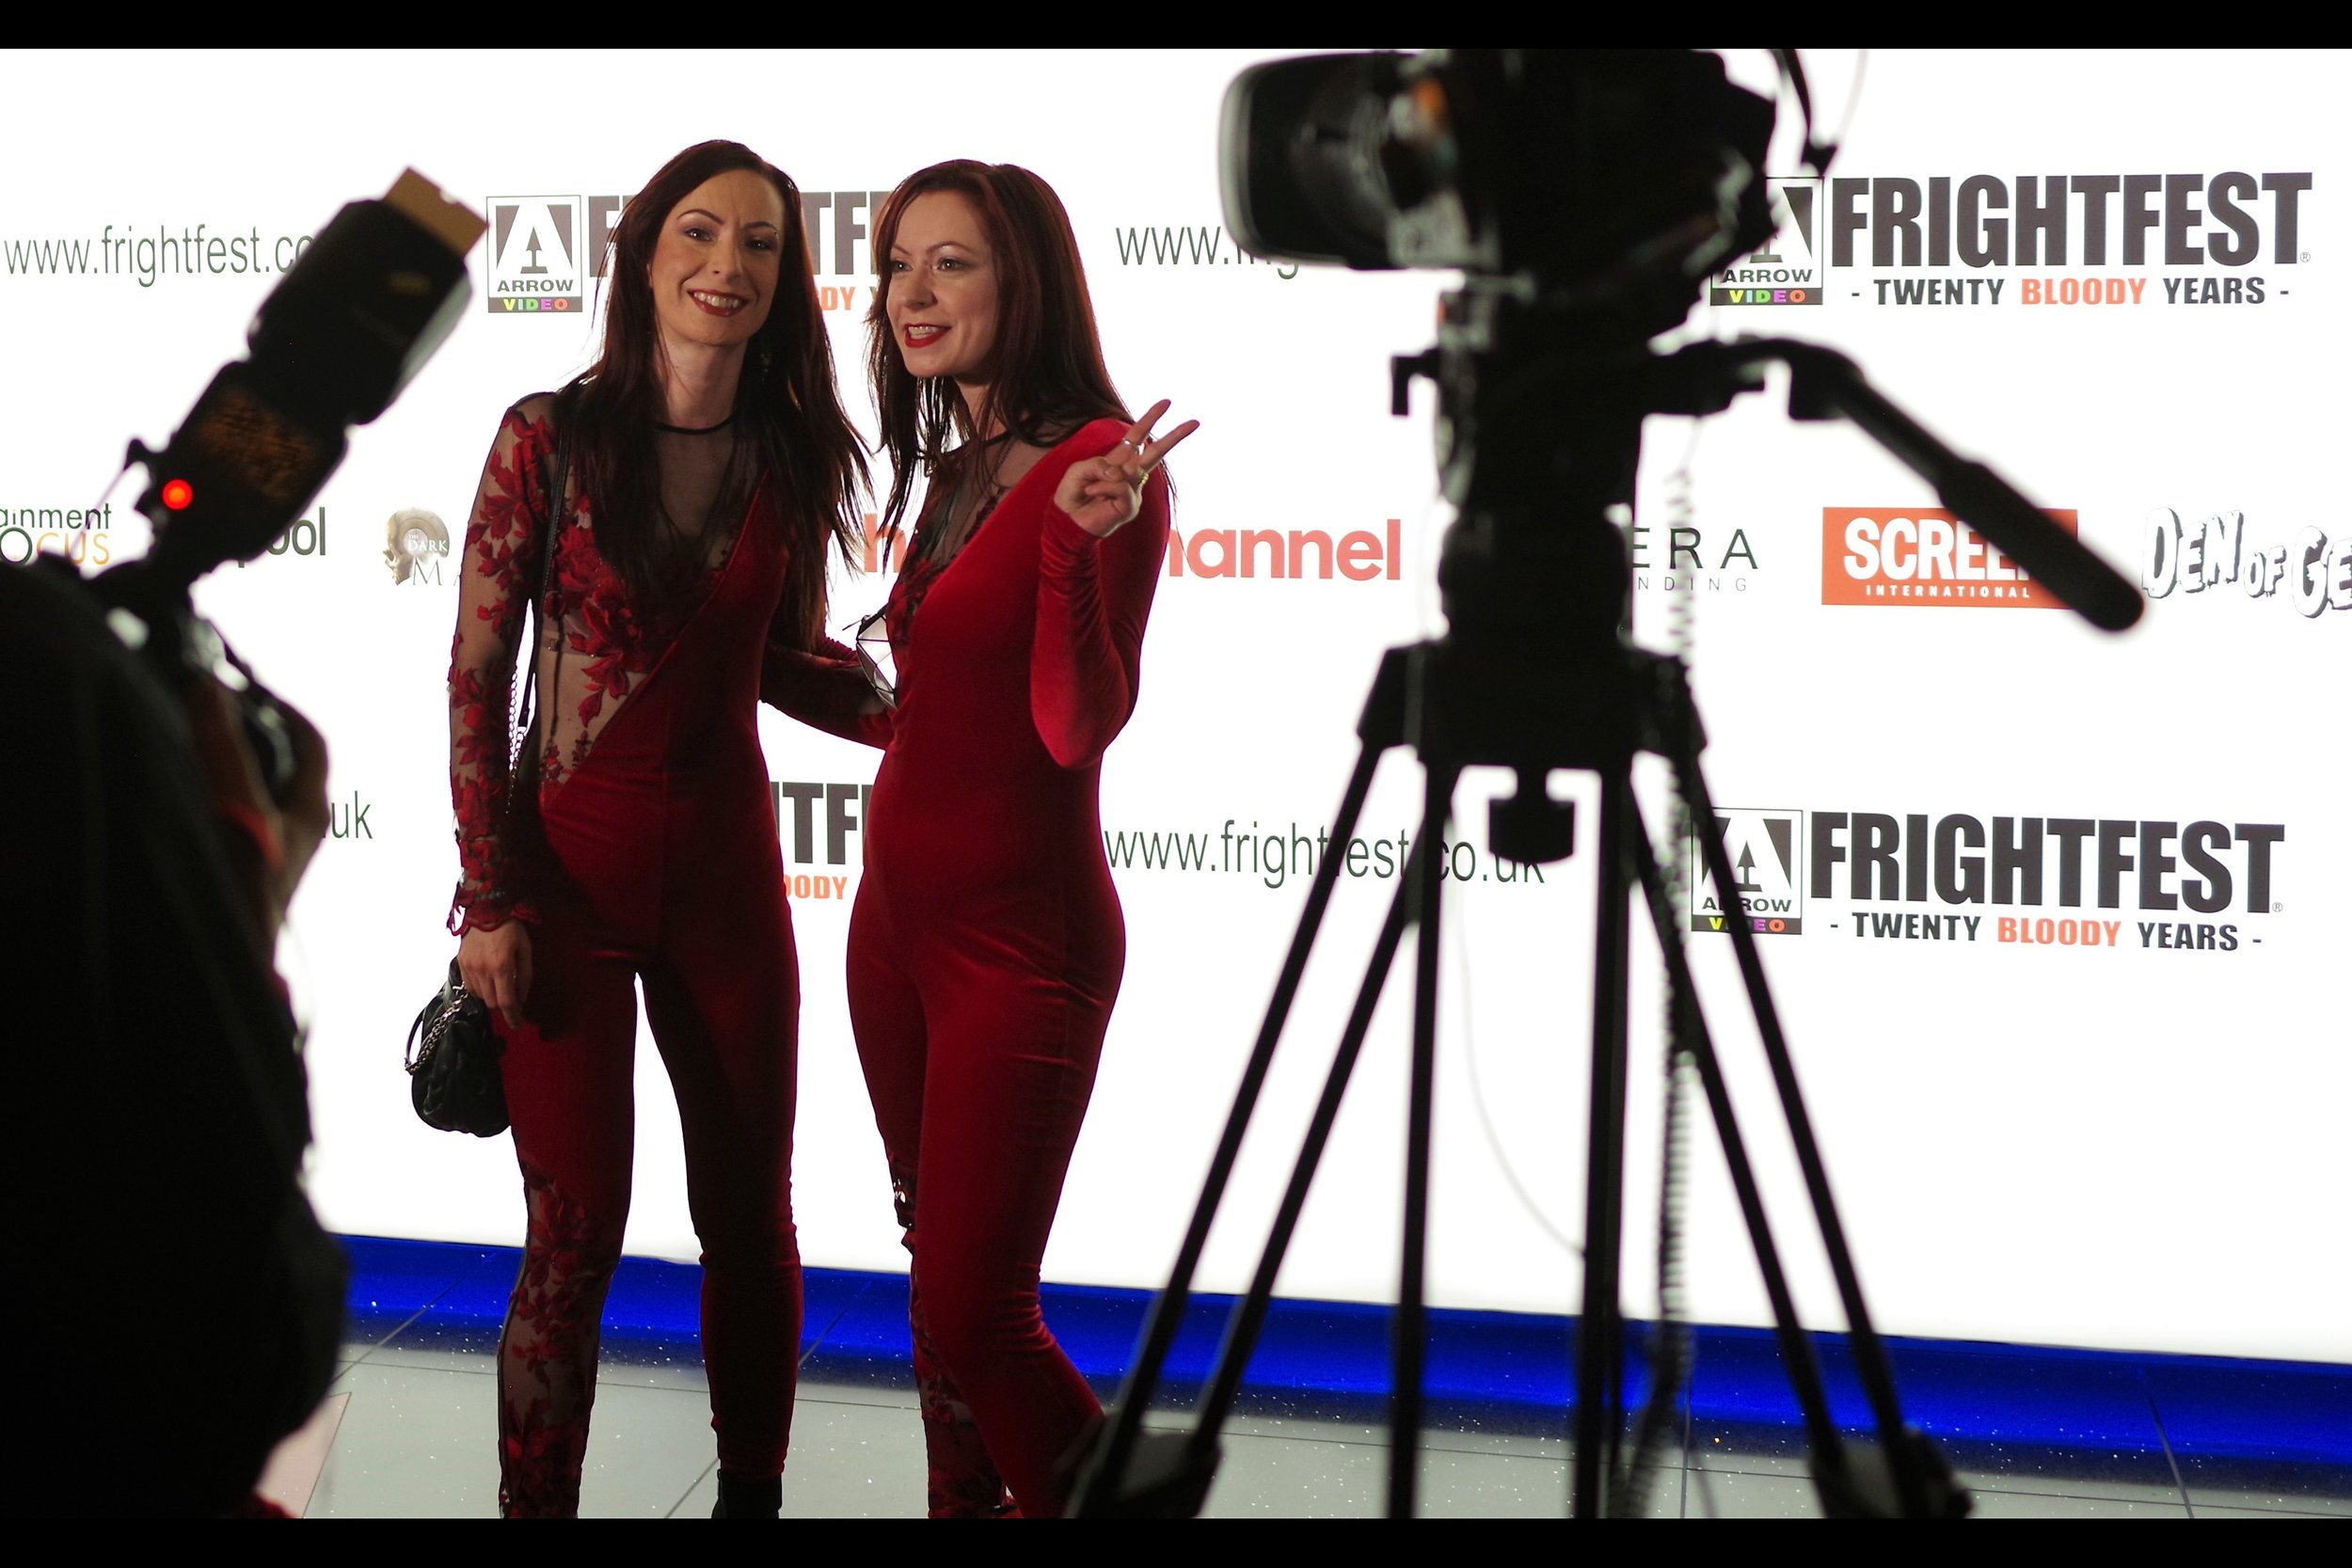 I like the Soska Sisters. They are the ideal unofficial ambassadors for Frightfest - relentlessly enthusiastic, cheerful and happy, and demons on social media!